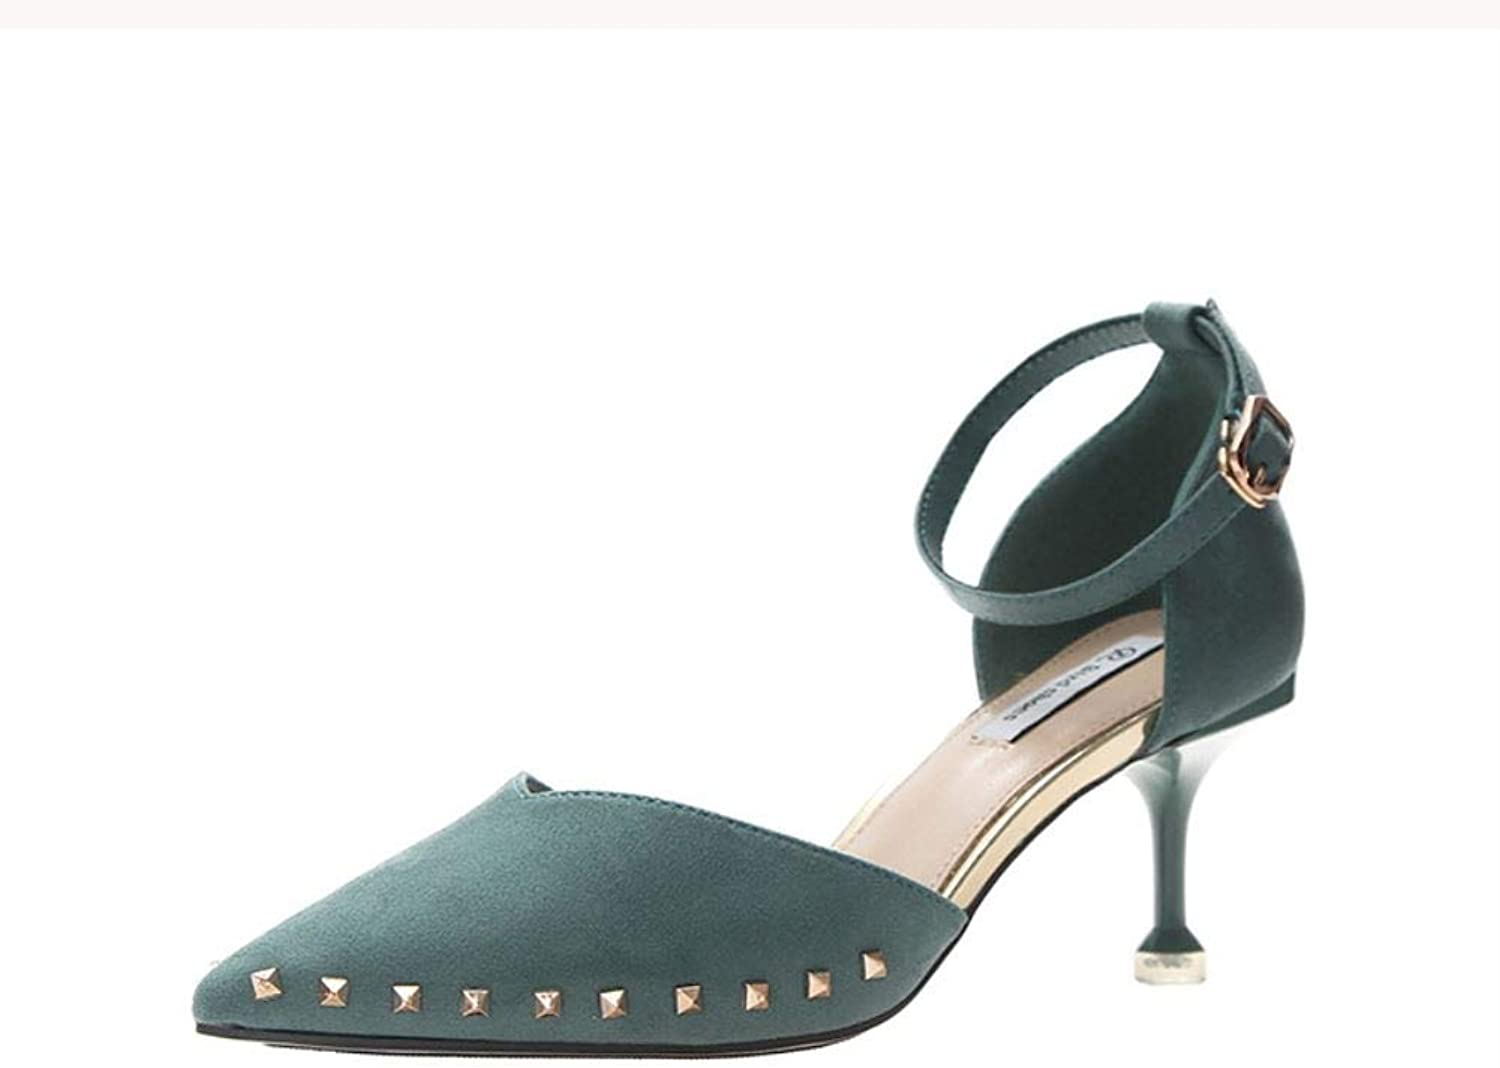 Carriesu 2019 Spring New European and American Pointed Toe Stiletto Heel high-Heeled shoes with Buckle Sandals Female Hollow Wild Women's shoes